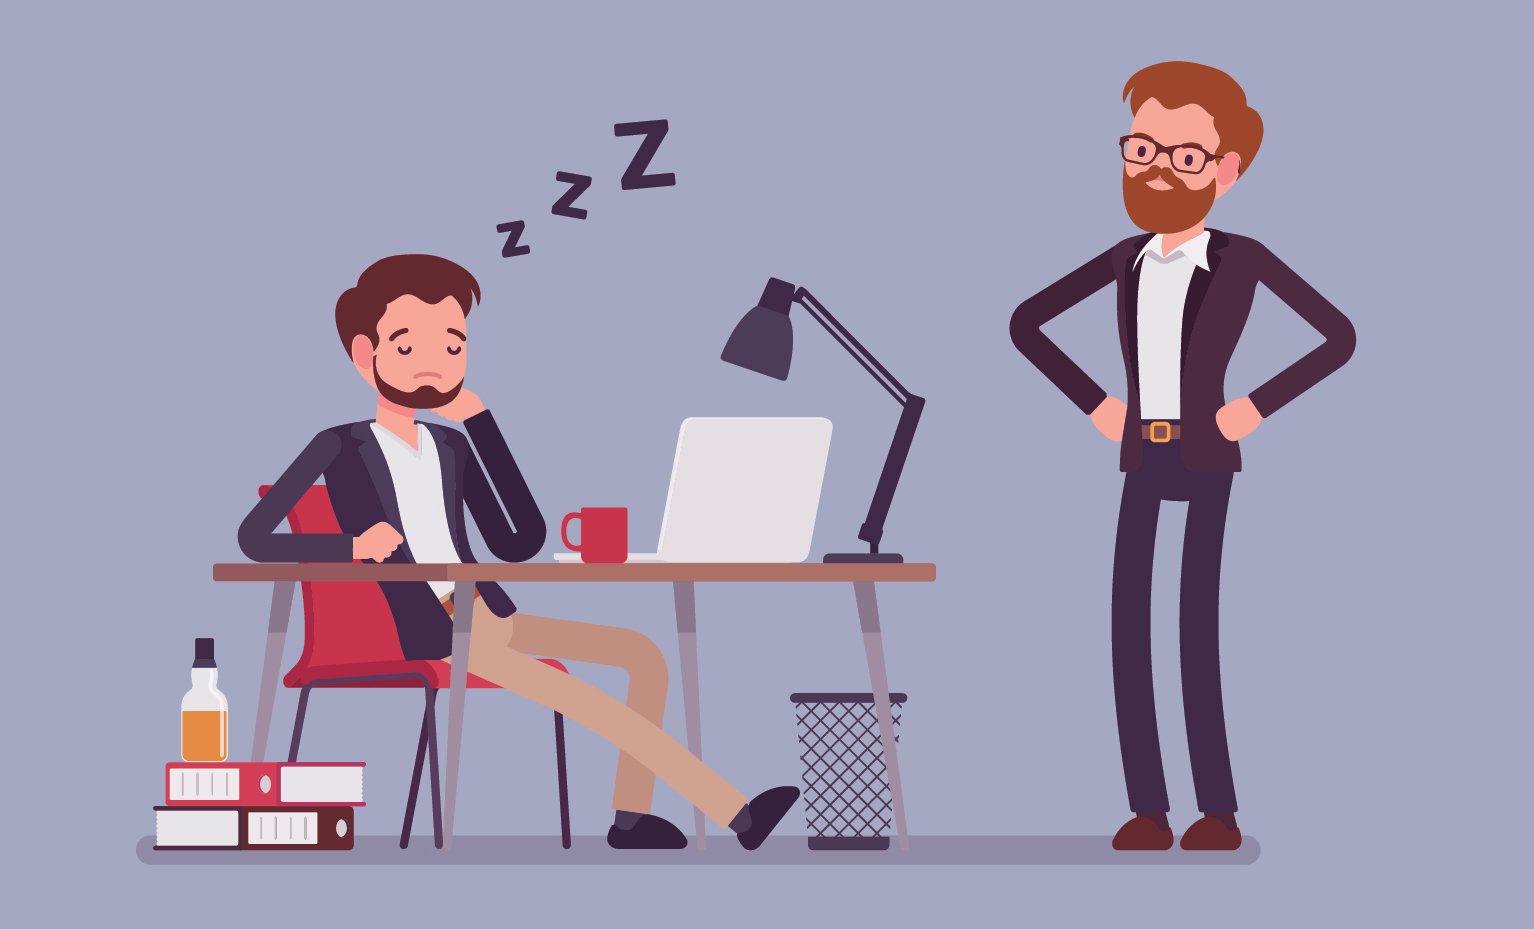 #LetsTalkMillennials workplace survival guide - how to stay awake at work